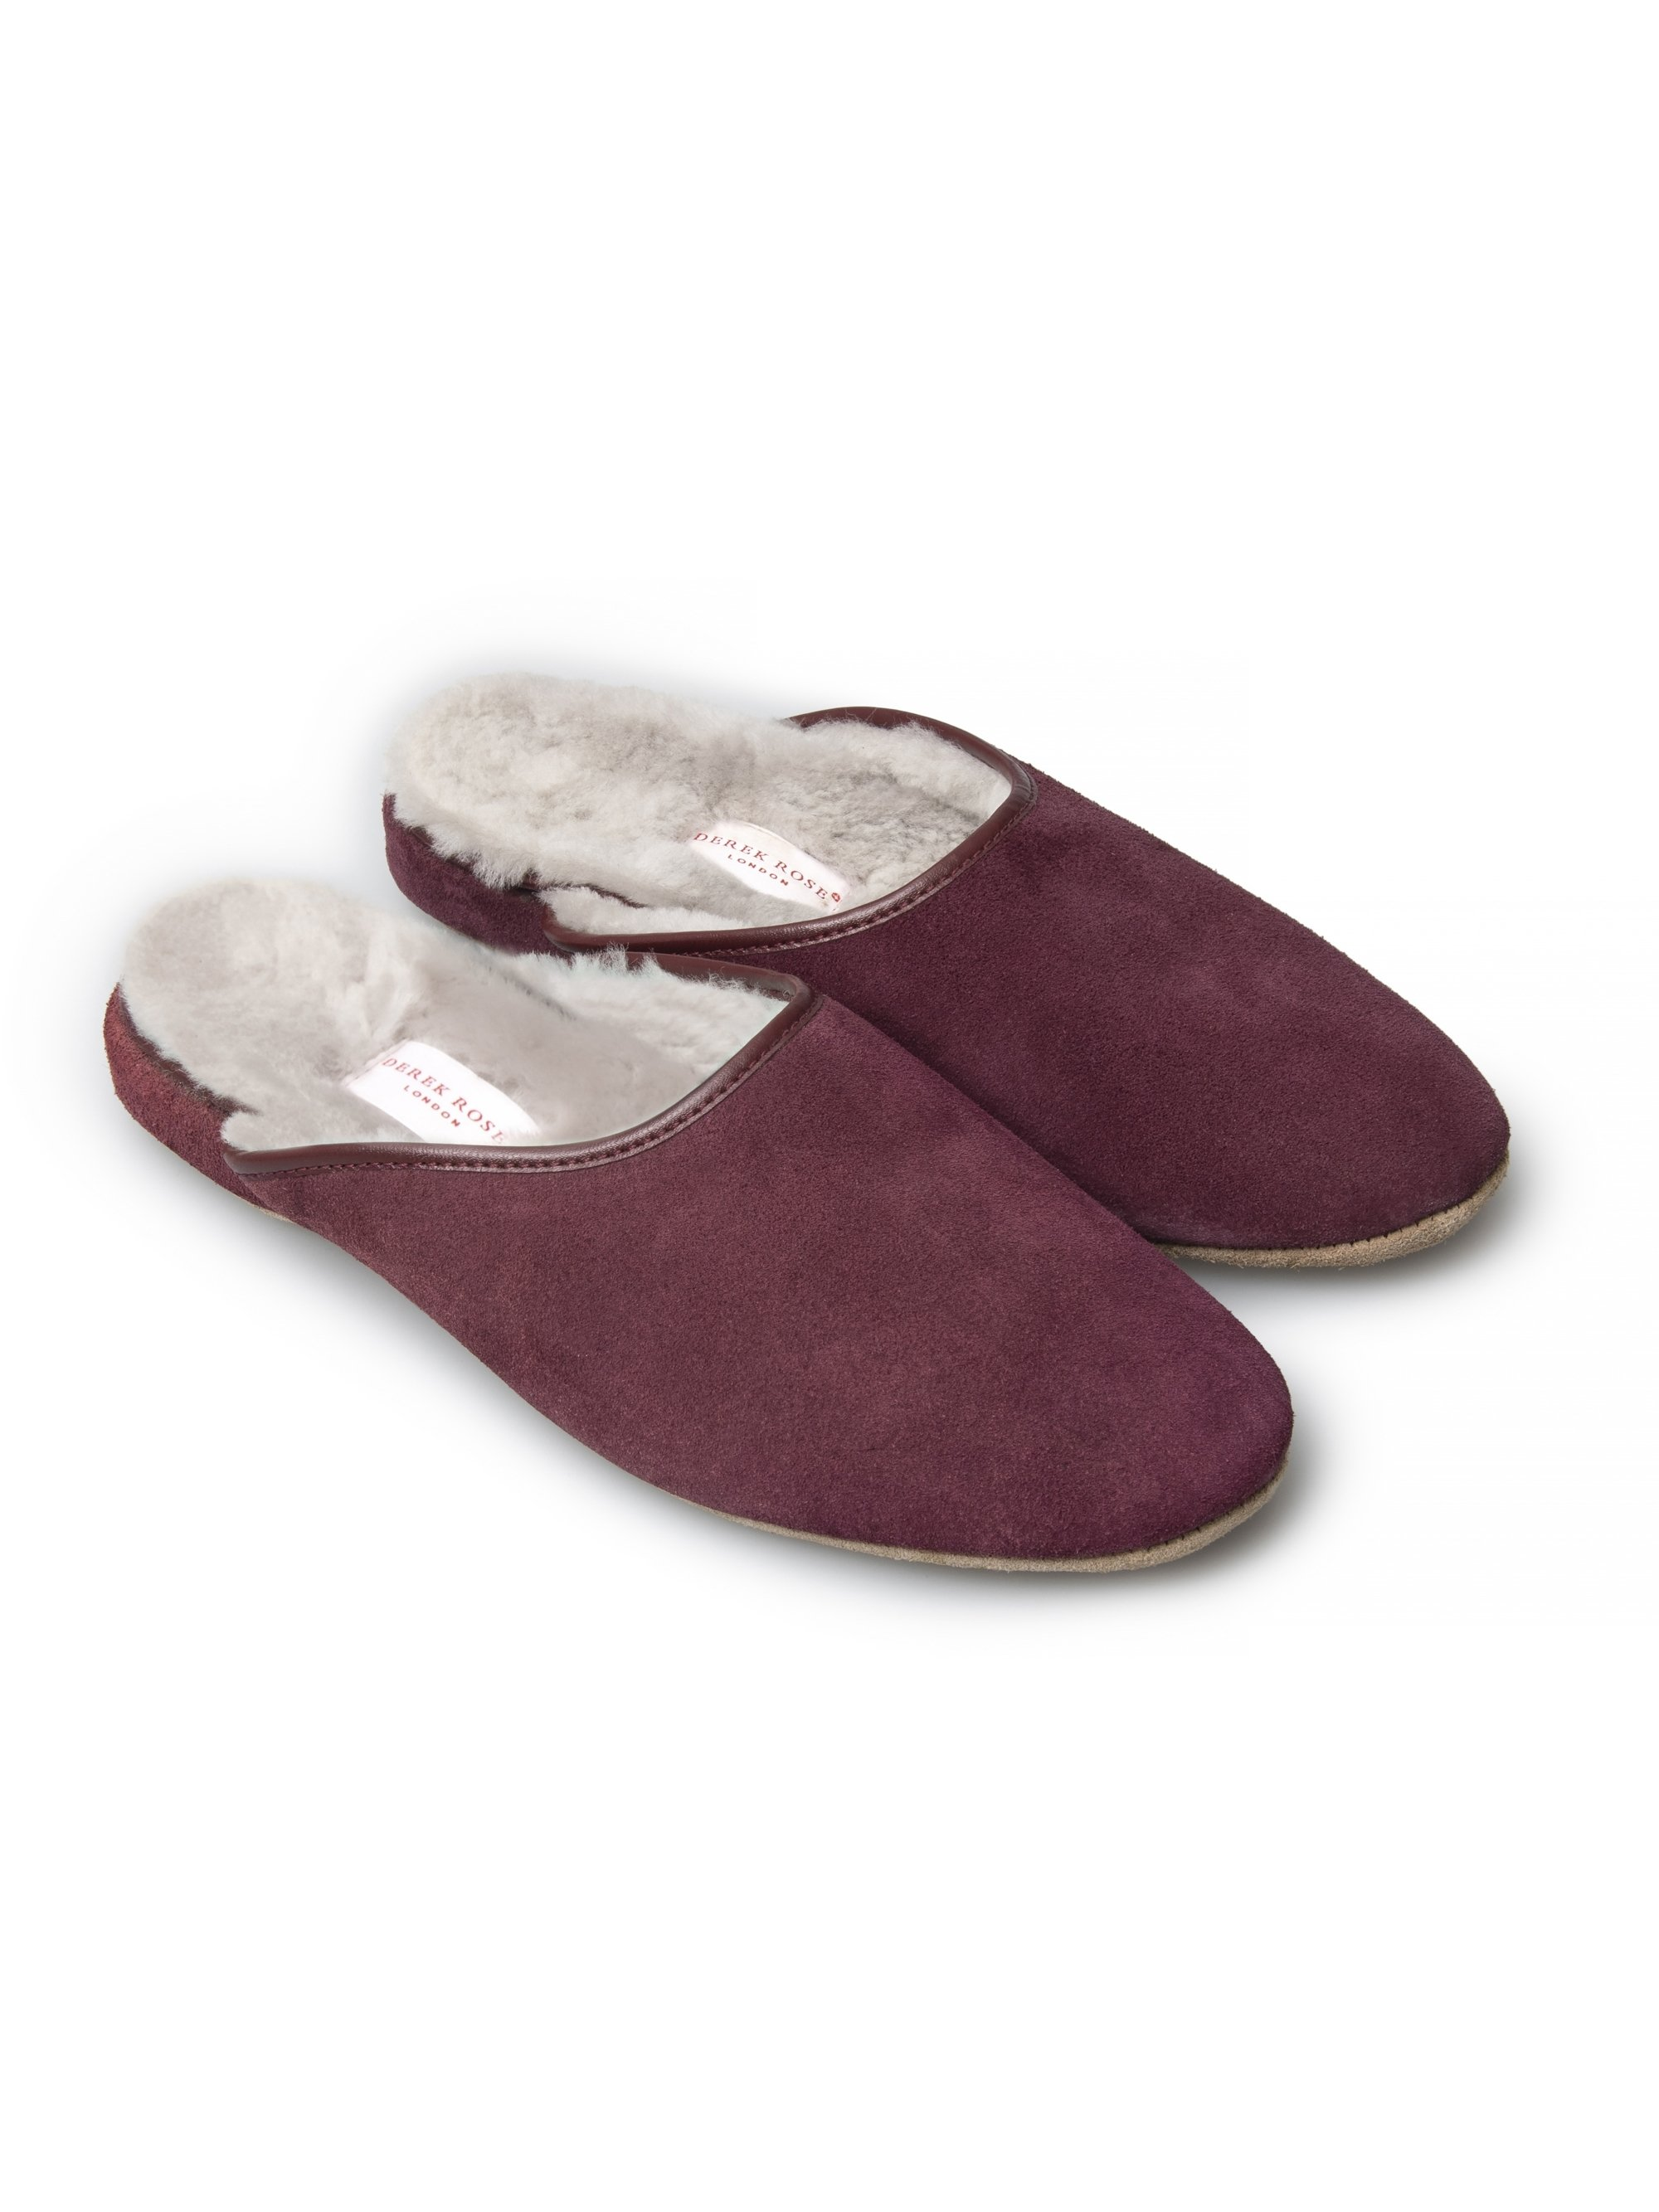 Women's Open-Back Slipper Imogen Suede Sheepskin Bordeaux